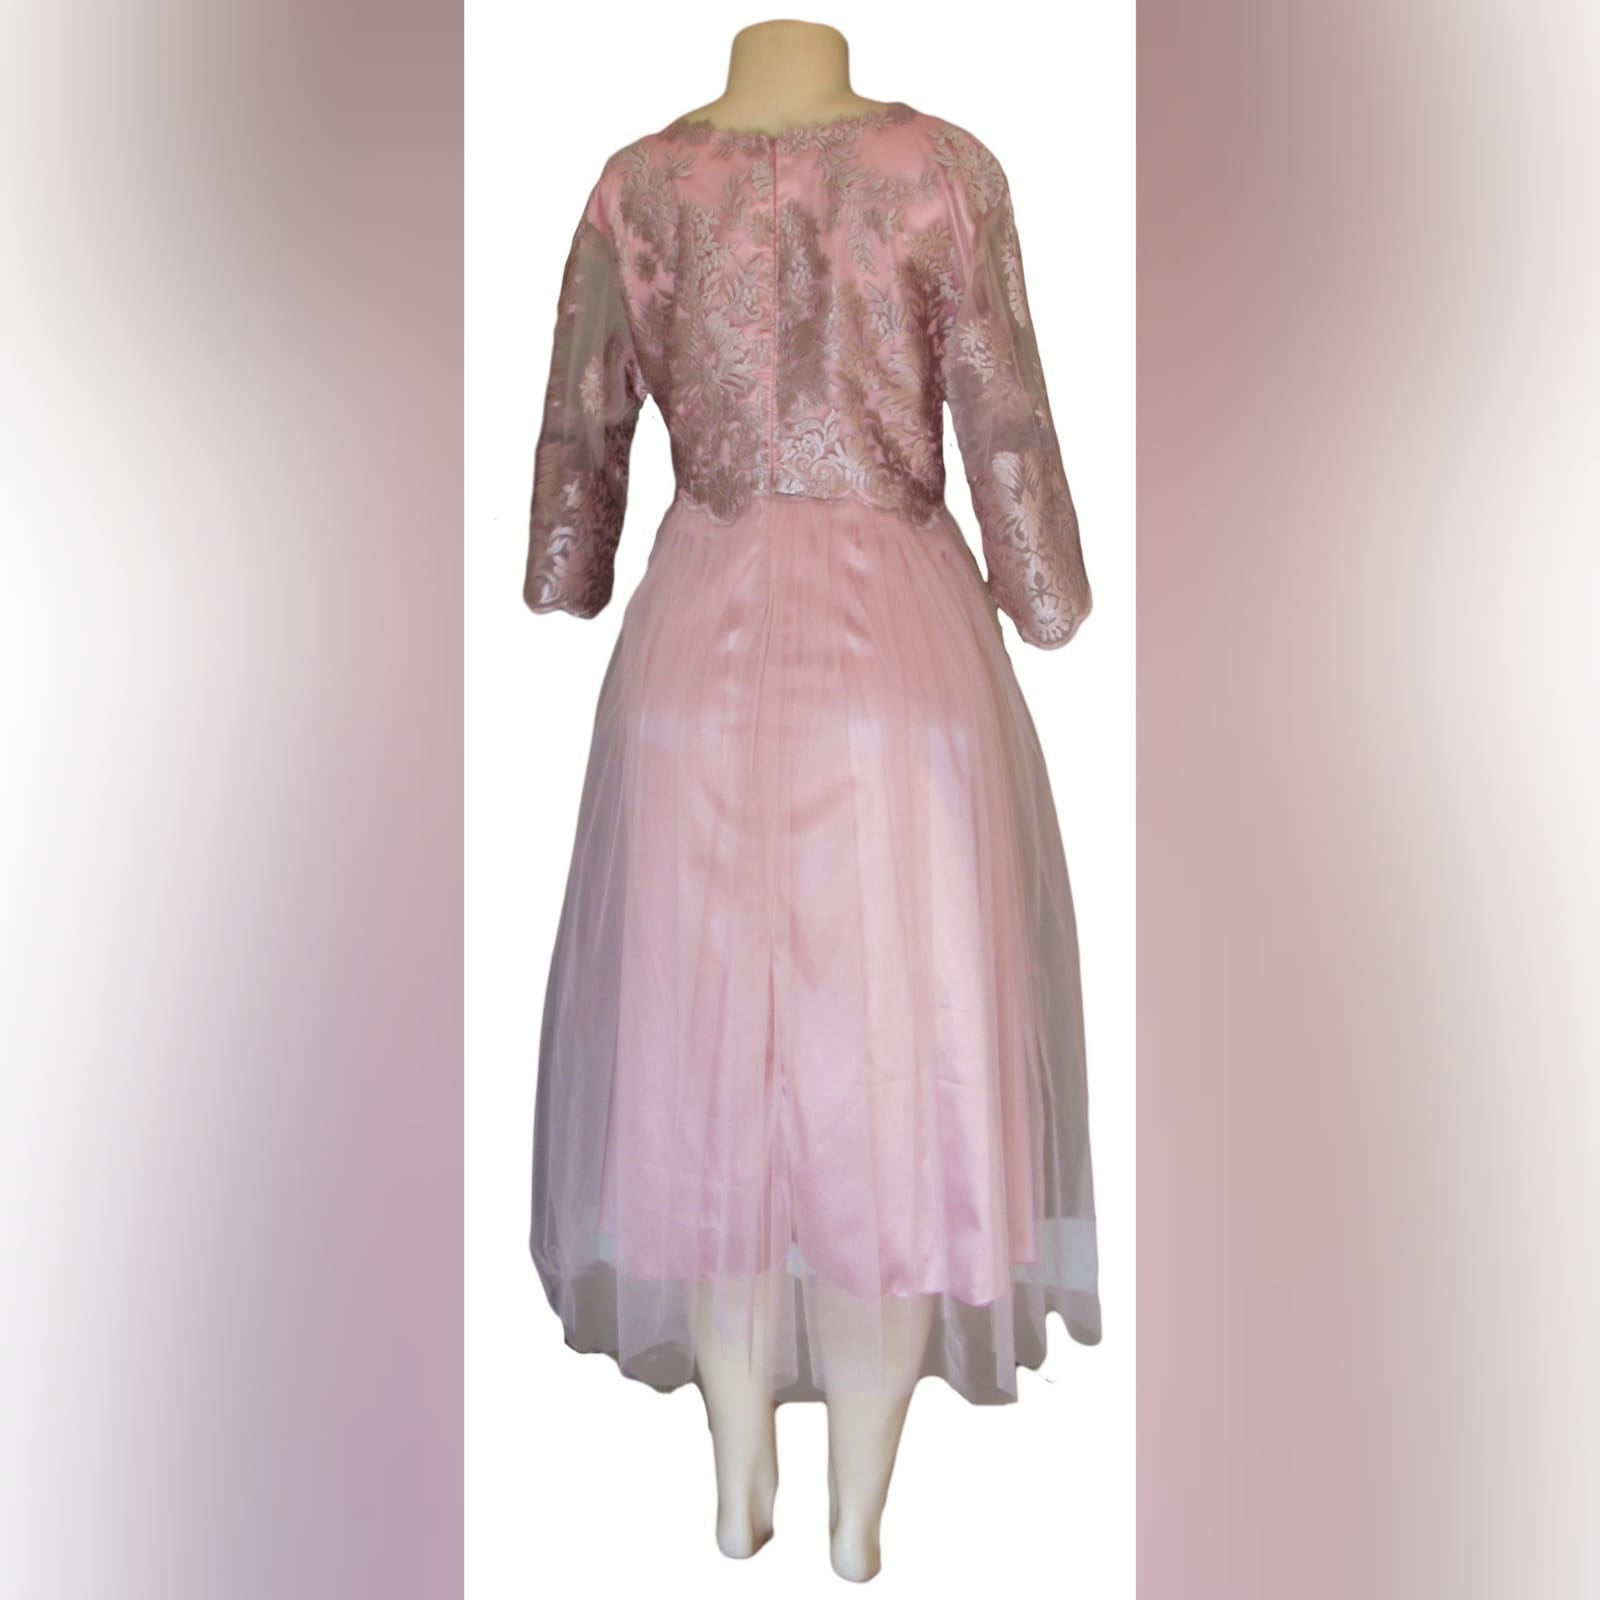 Dusty pink lace and tulle mother of the bride dress 6 dusty pink lace and tulle mother of the bride dress. Knee length with 3/4 sleeves.